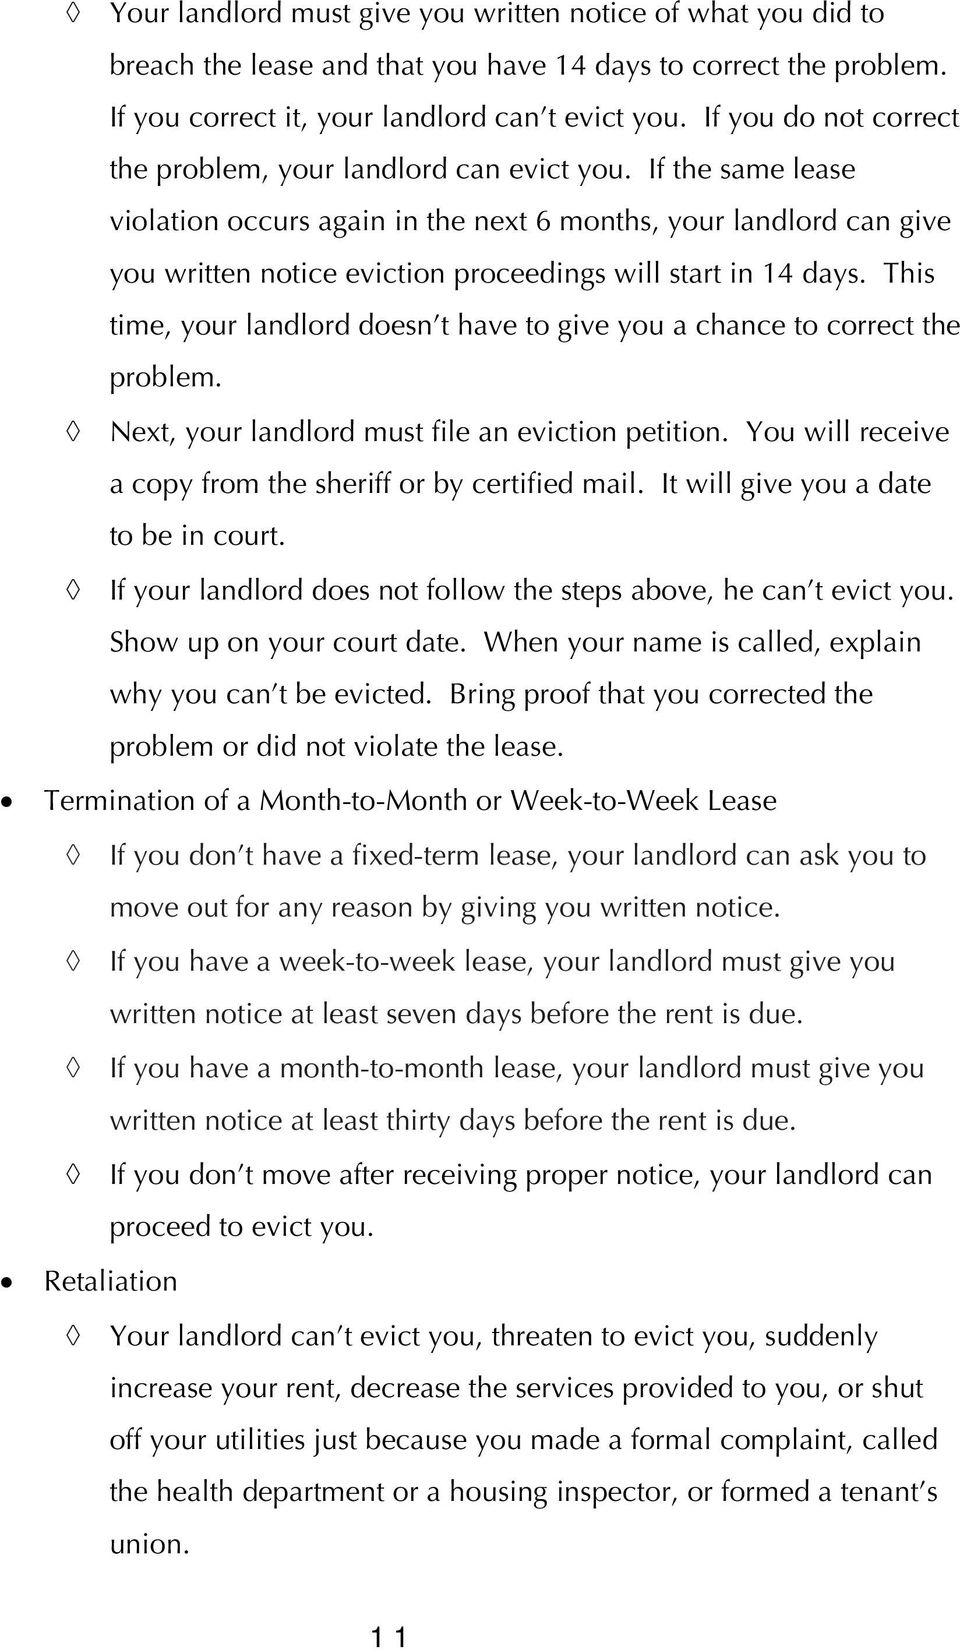 If the same lease violation occurs again in the next 6 months, your landlord can give you written notice eviction proceedings will start in 14 days.